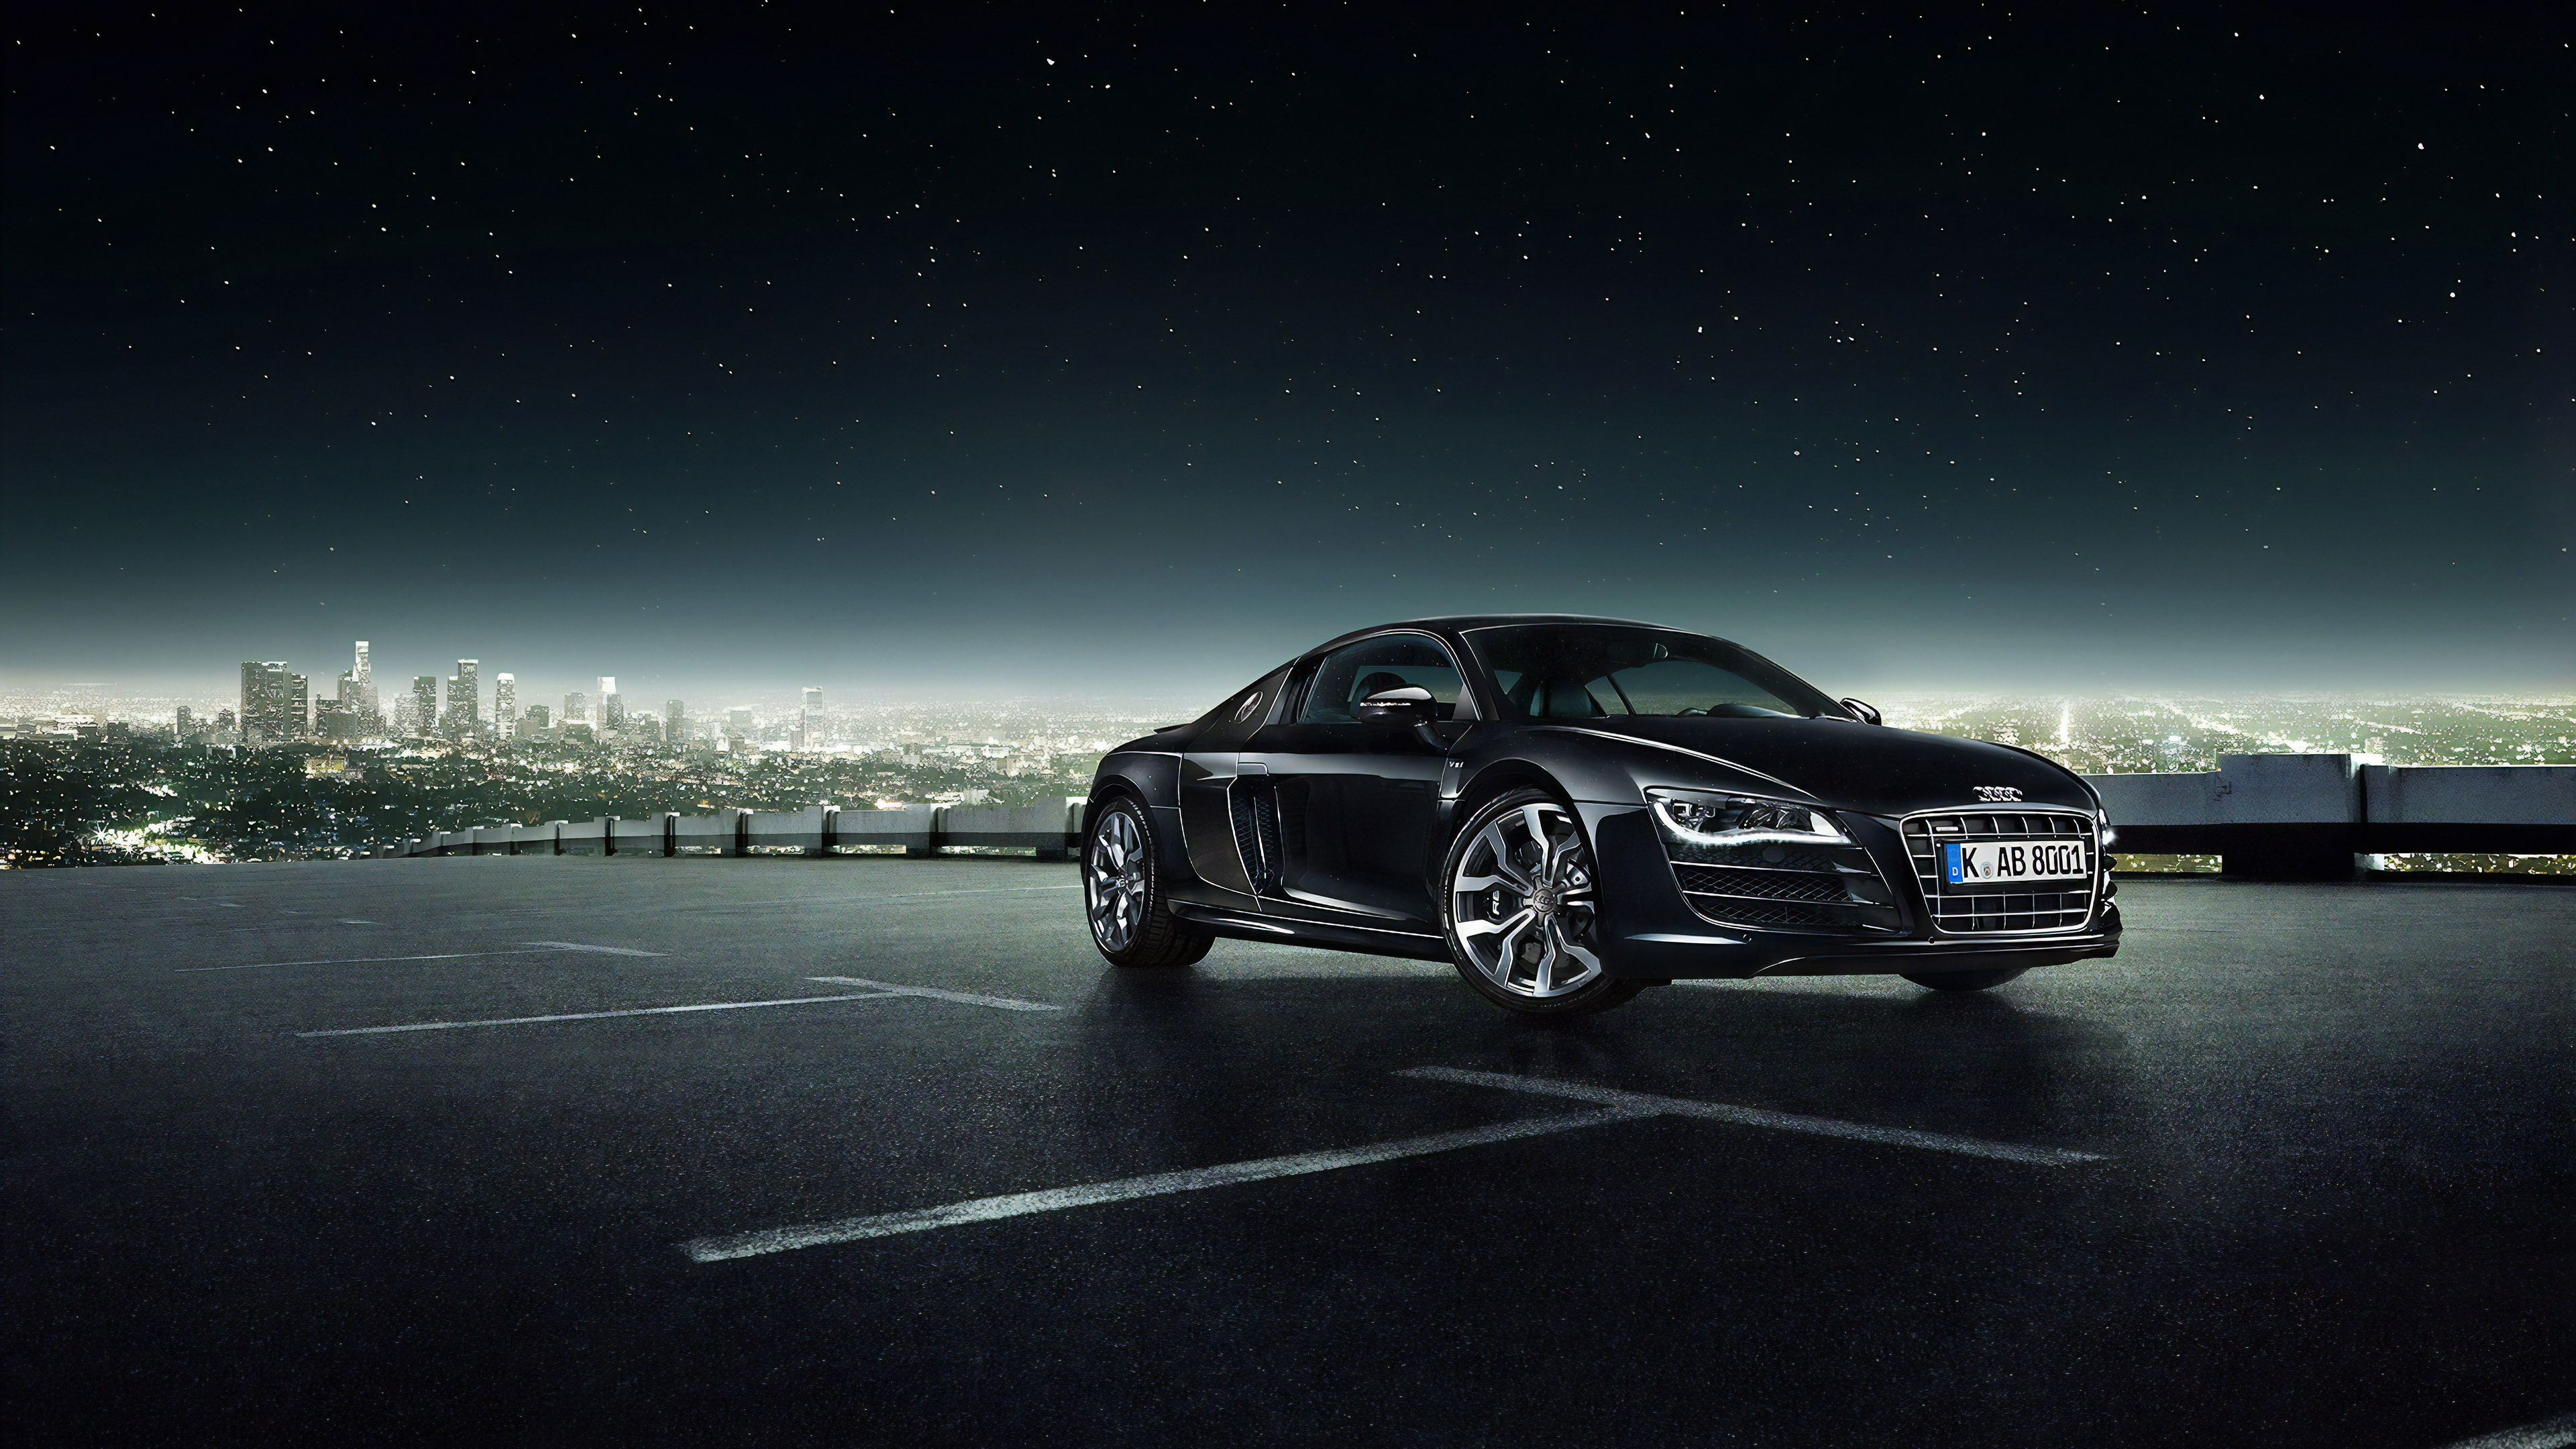 audi r8 in la 1565054860 - Audi R8 In La - hd-wallpapers, cars wallpapers, behance wallpapers, audi wallpapers, audi r8 wallpapers, 4k-wallpapers, 2018 cars wallpapers